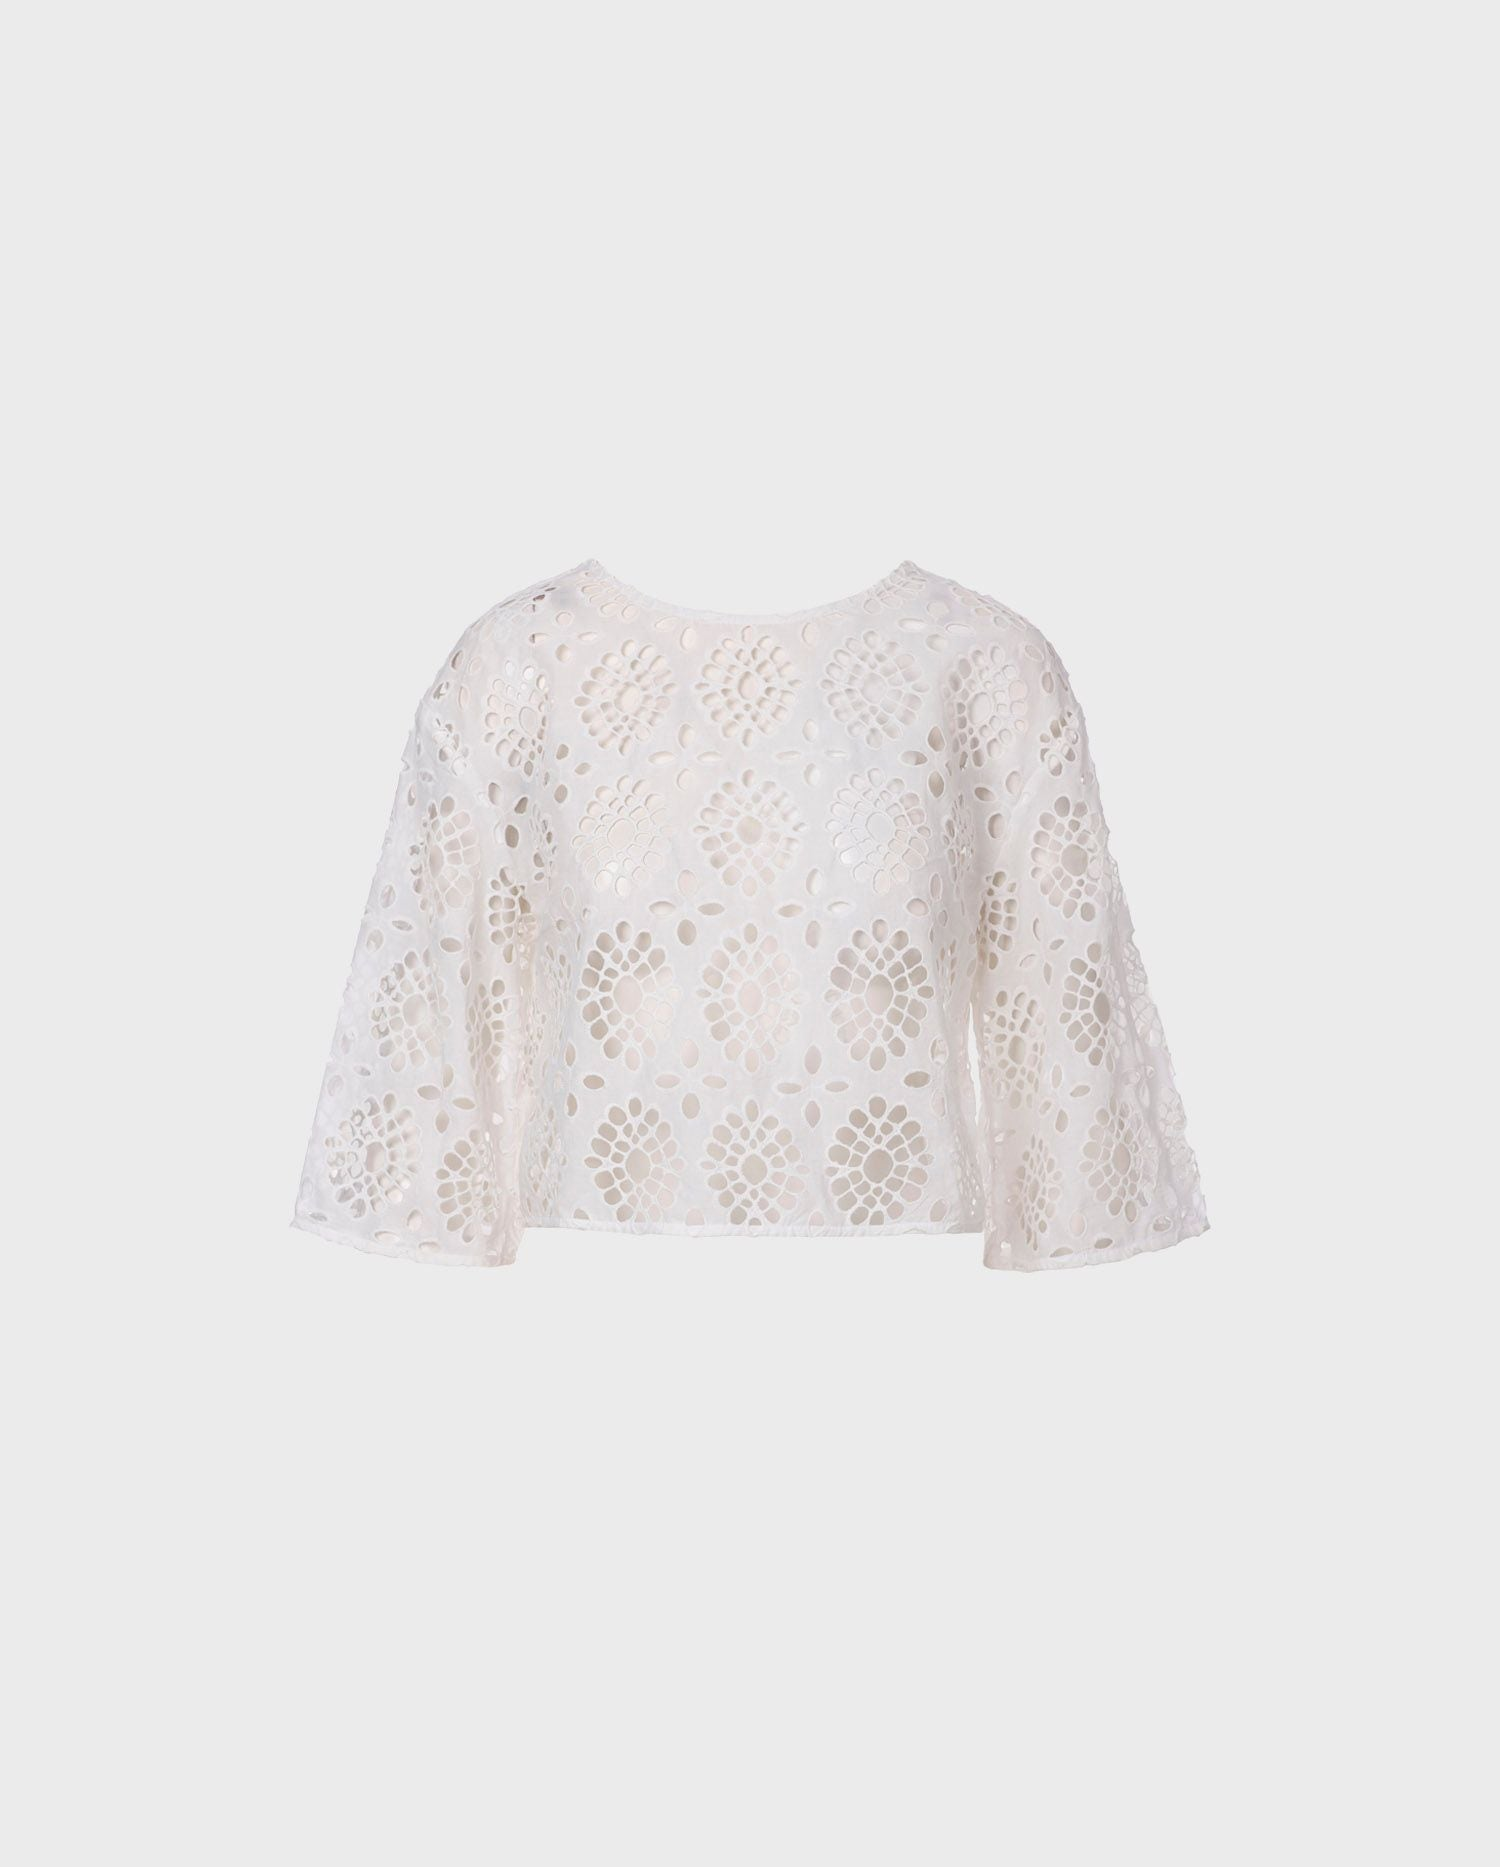 Anne Fontaine Calys Top